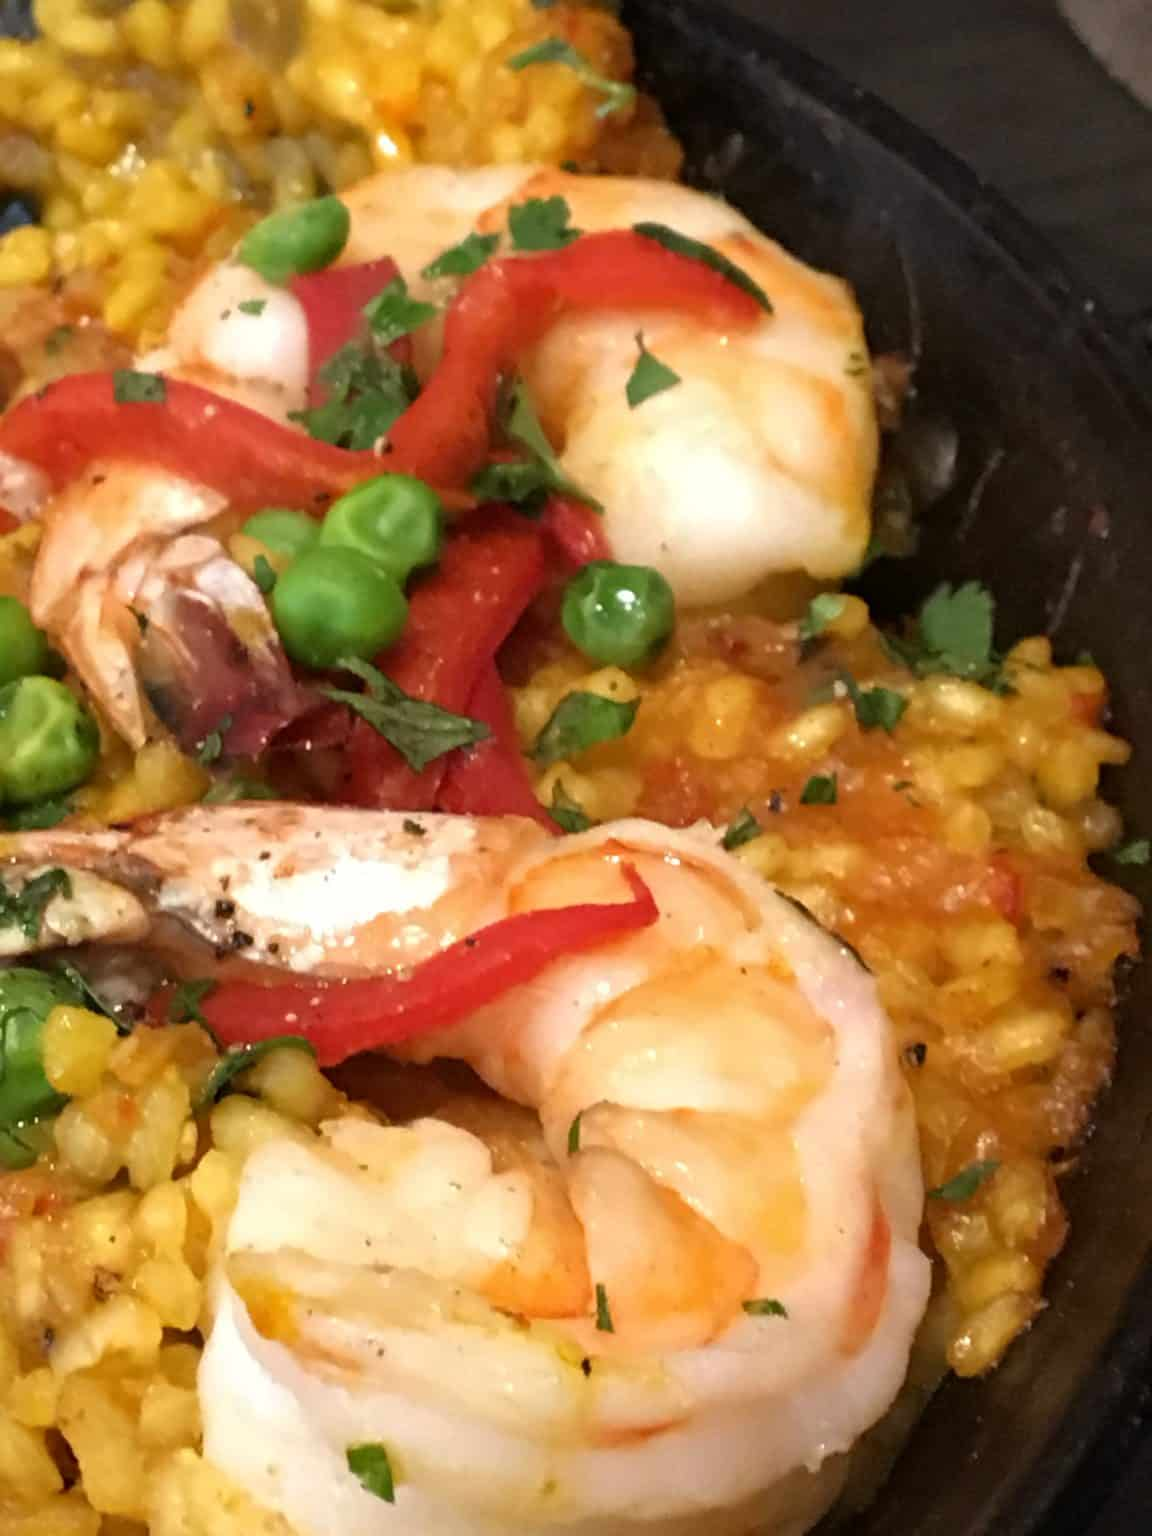 Plate of food with shrimp, yellow rice and green peas